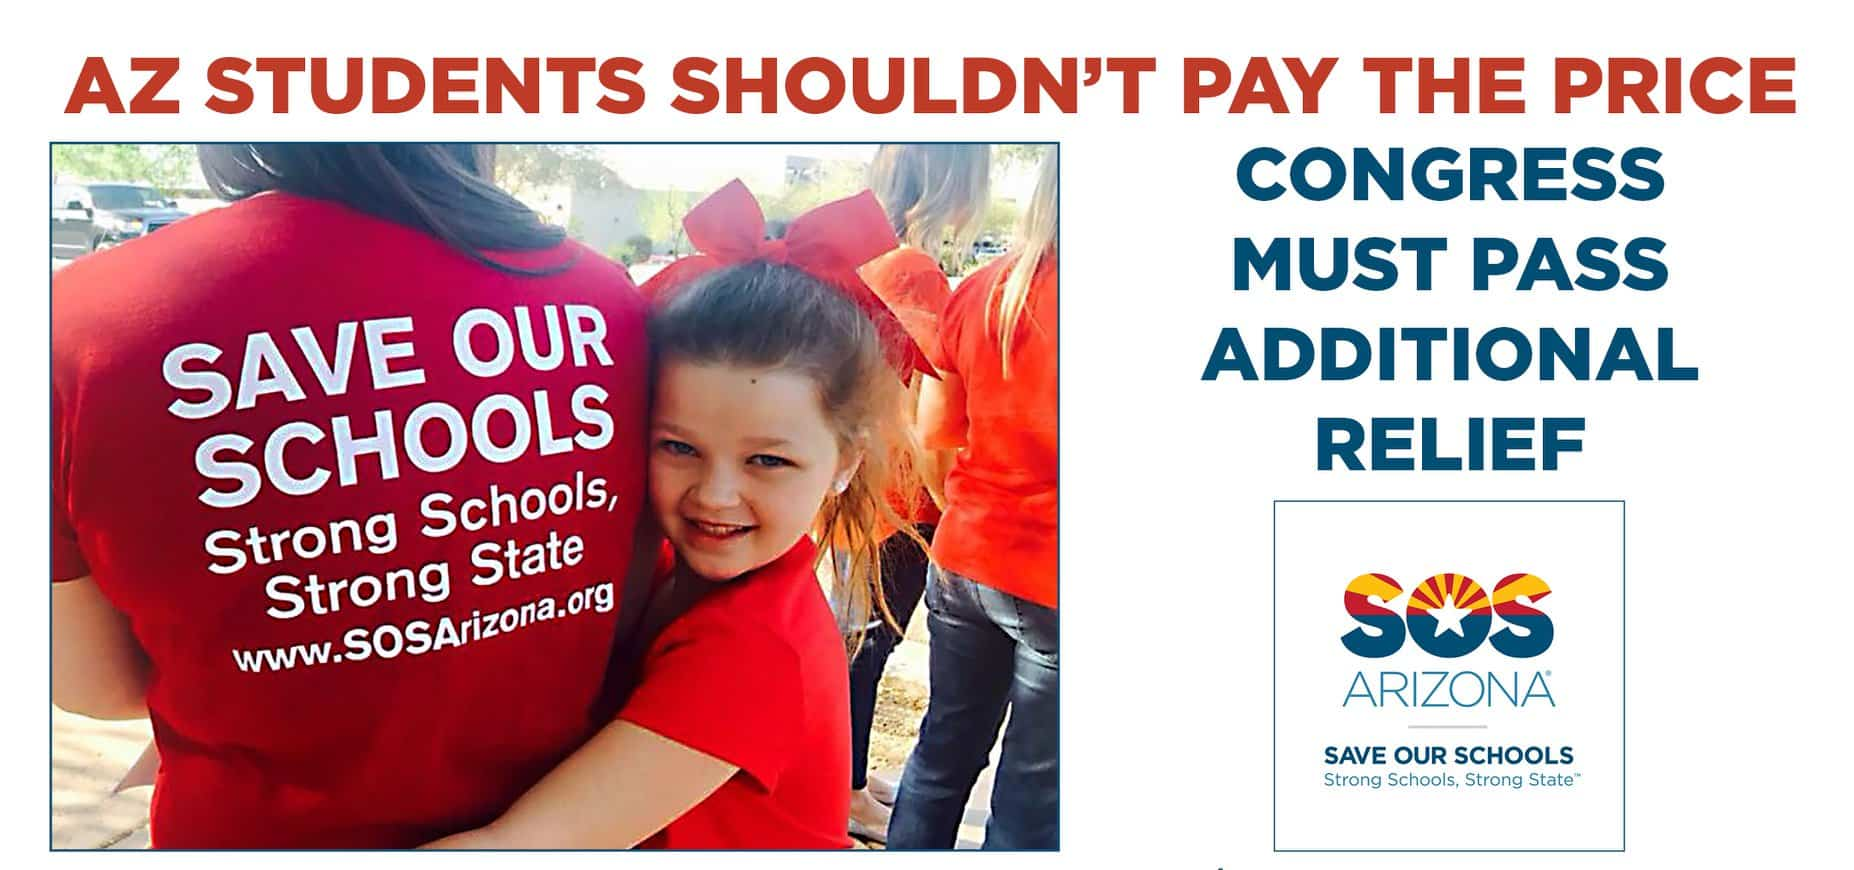 AZ students shouldn't pay the price! Congress must pass additional relief